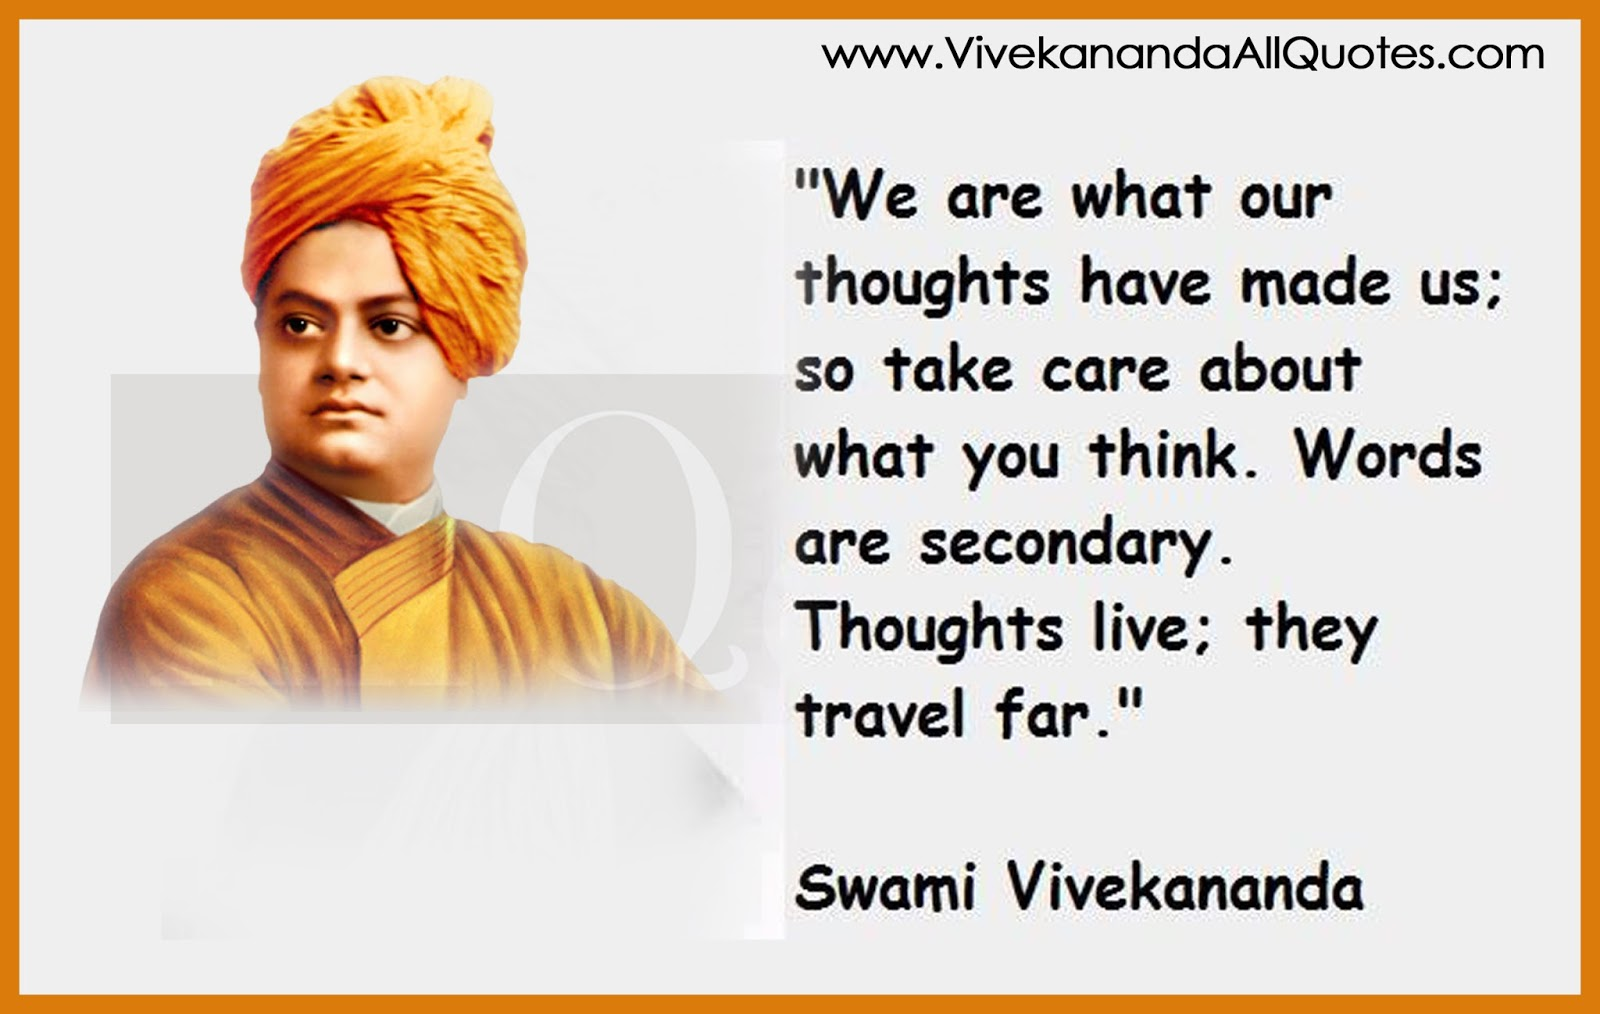 swami vivekananda quotes in english best messages www